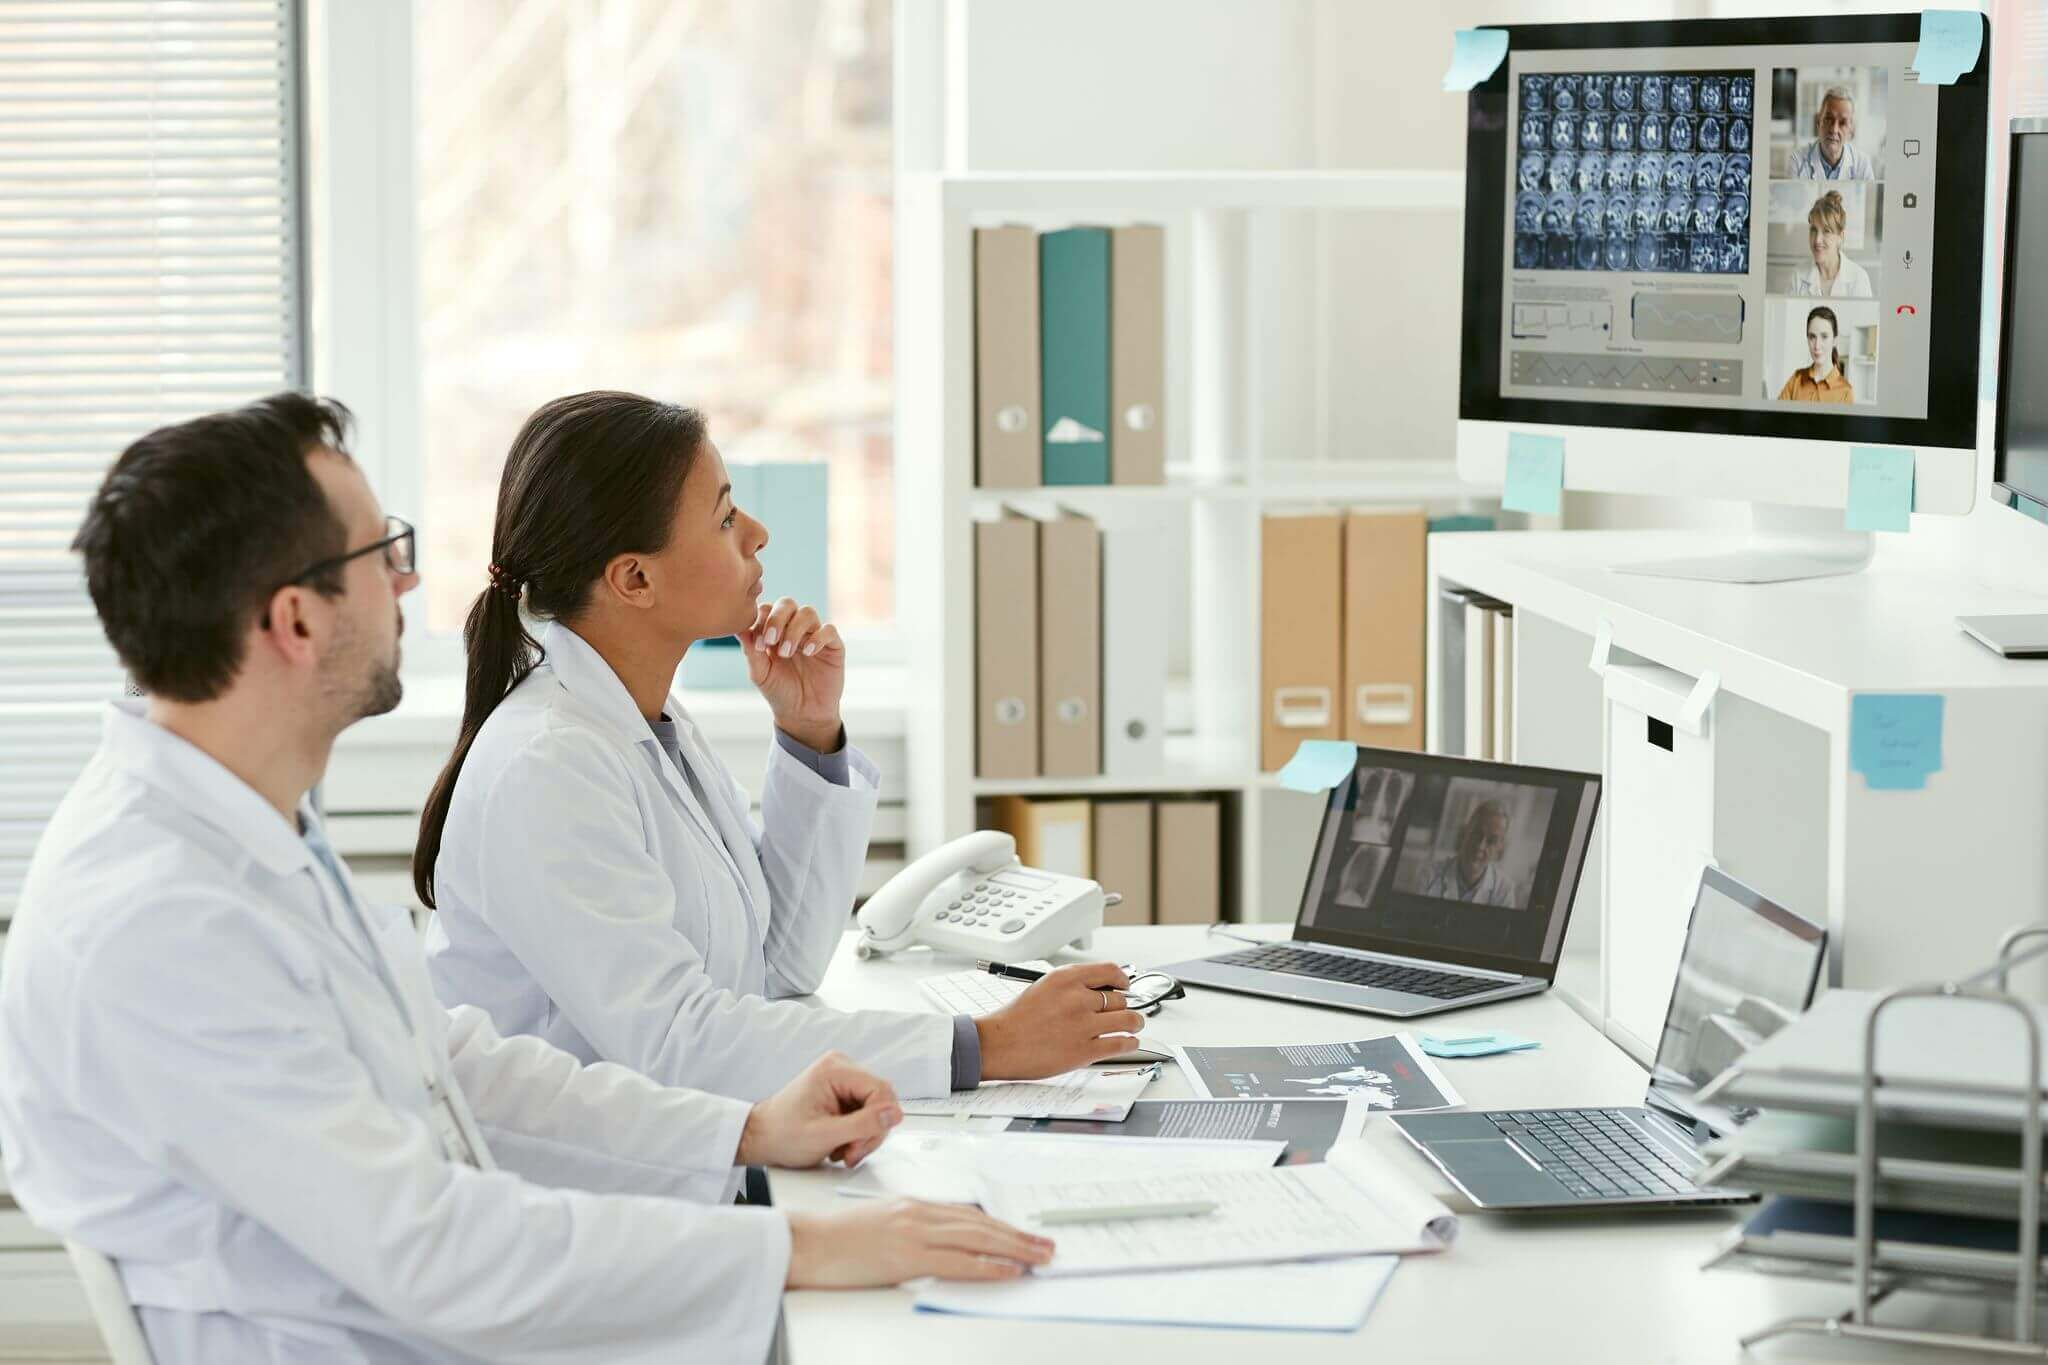 Two radiologists sit at a desk looking at MRI scans on a computer.